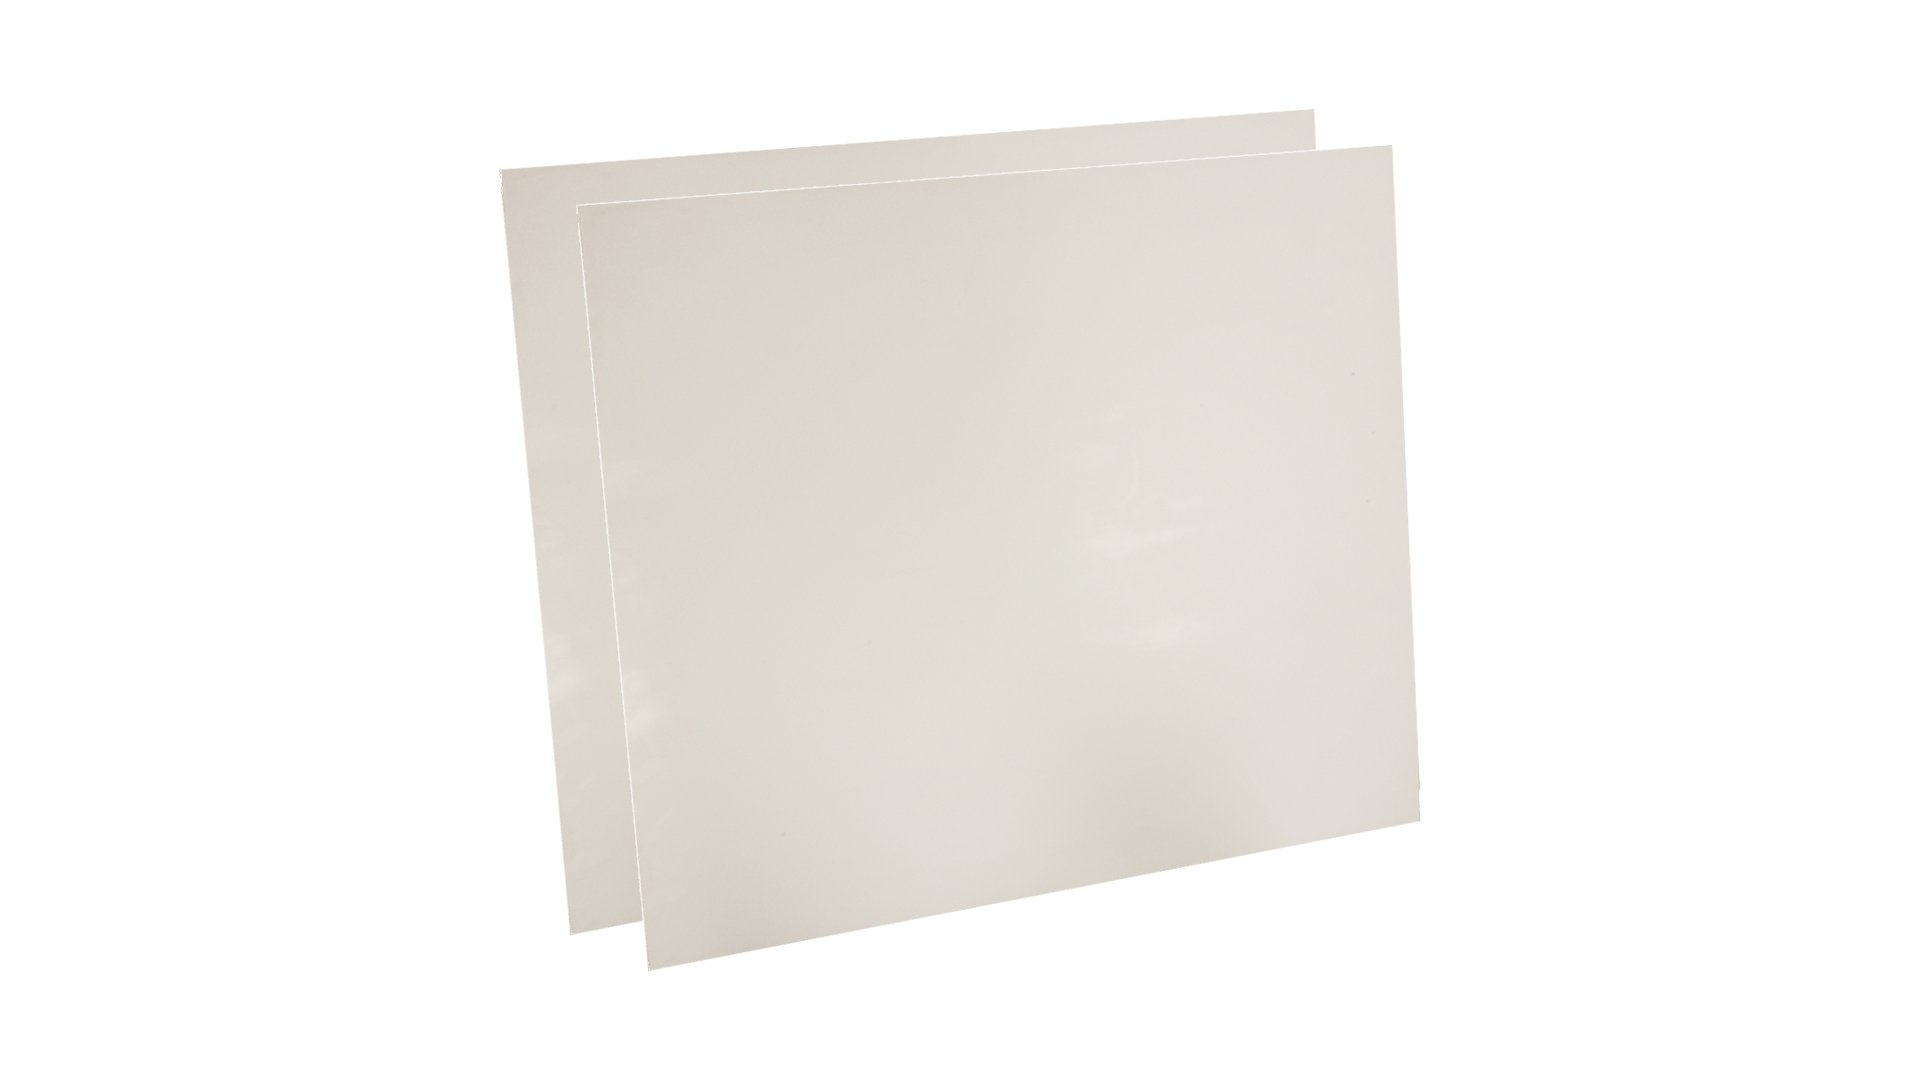 Sterling Seal 7530.5036x36x2 7530 Virgin Teflon Sheet, 1/2'' Thick, 36'' x 36'' (Pack of 2)